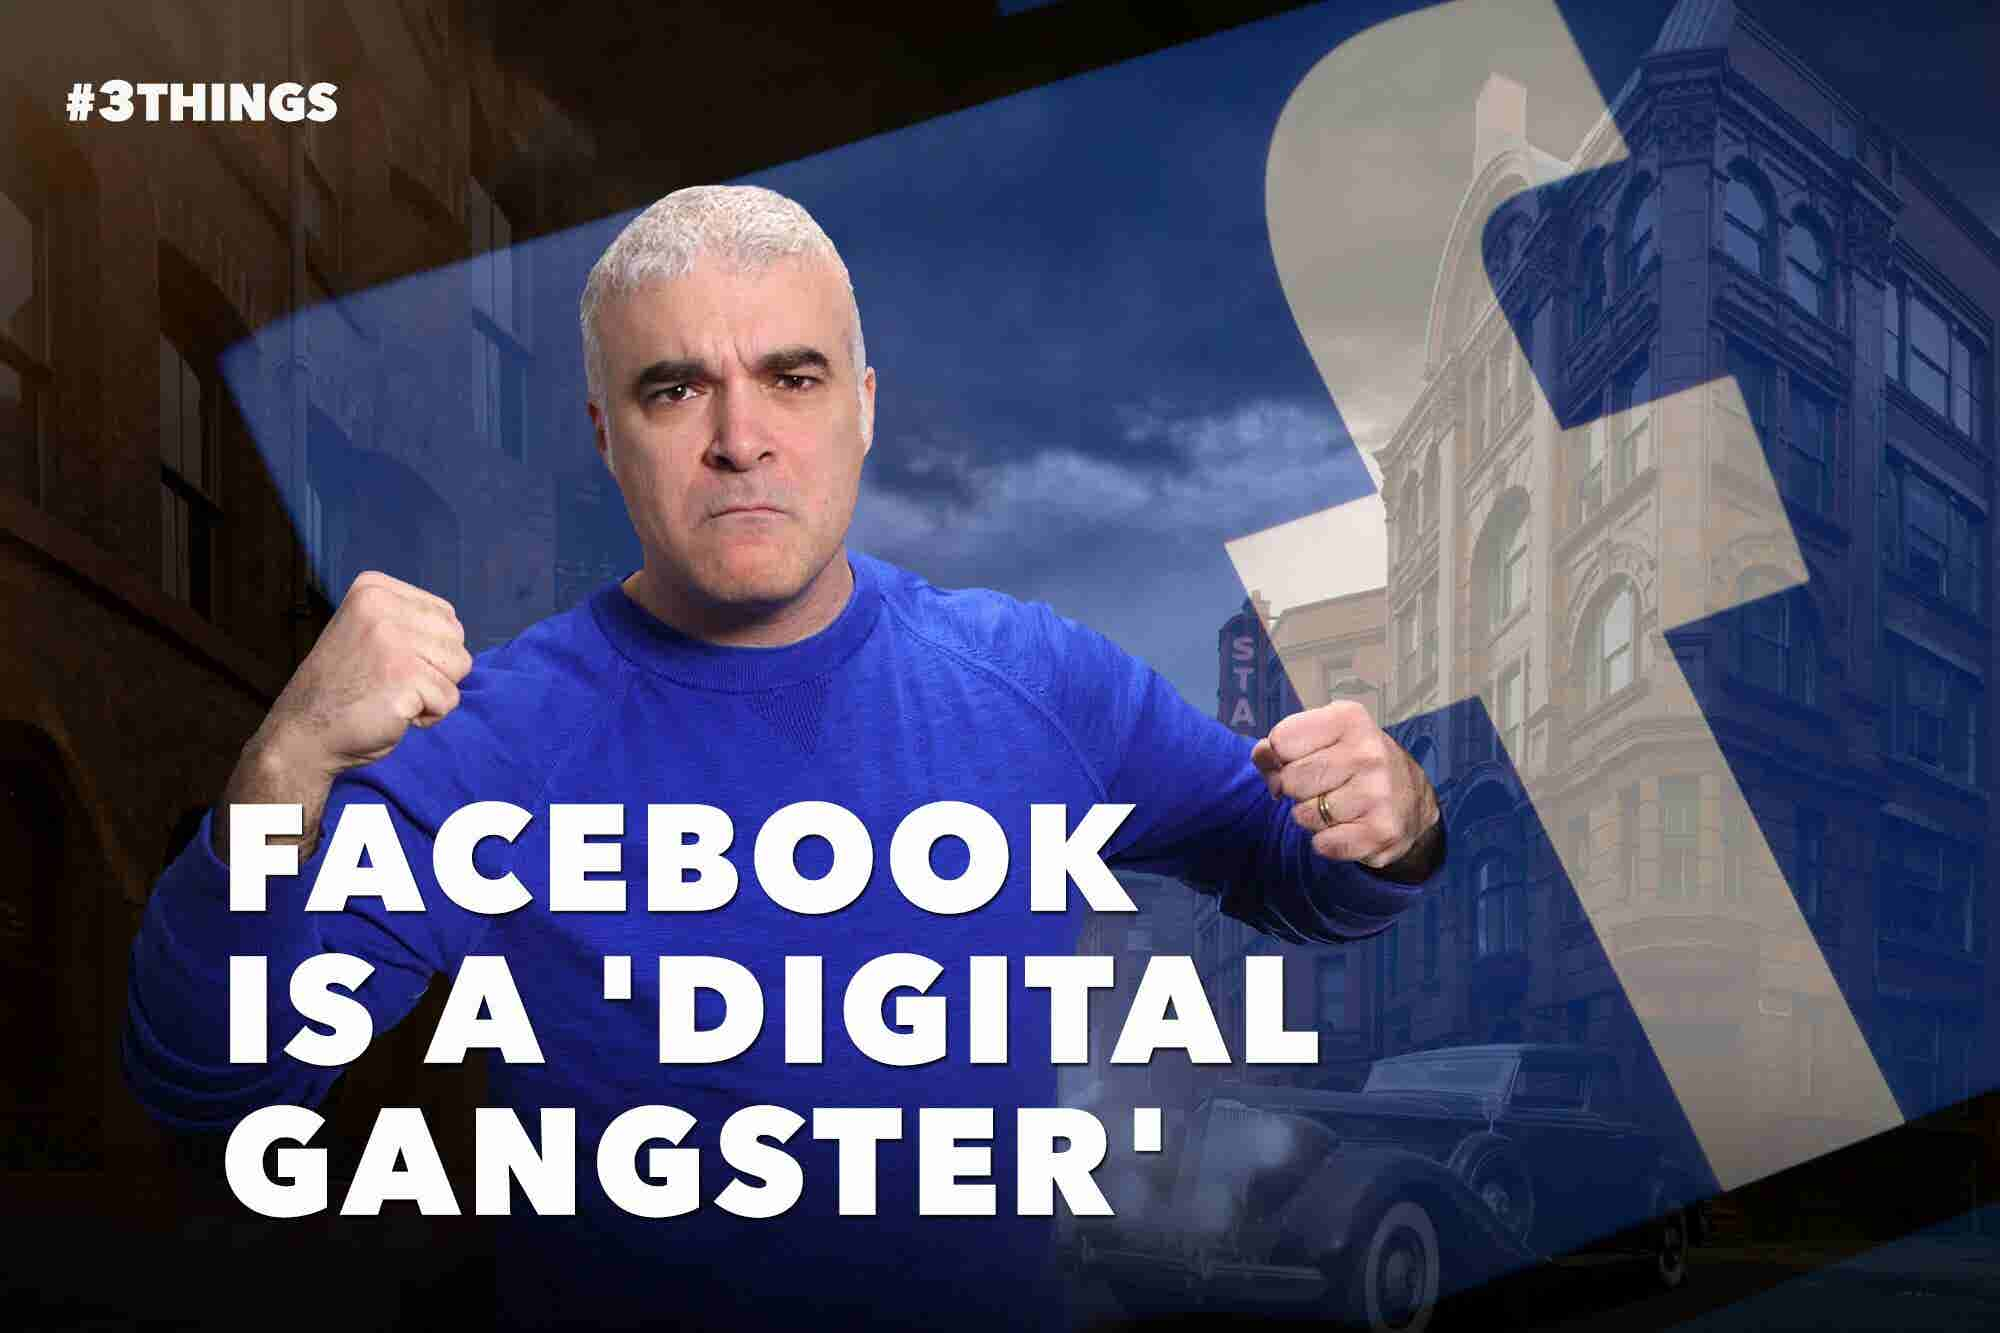 Facebook Is a 'Digital Gangster' (60-Second Video)